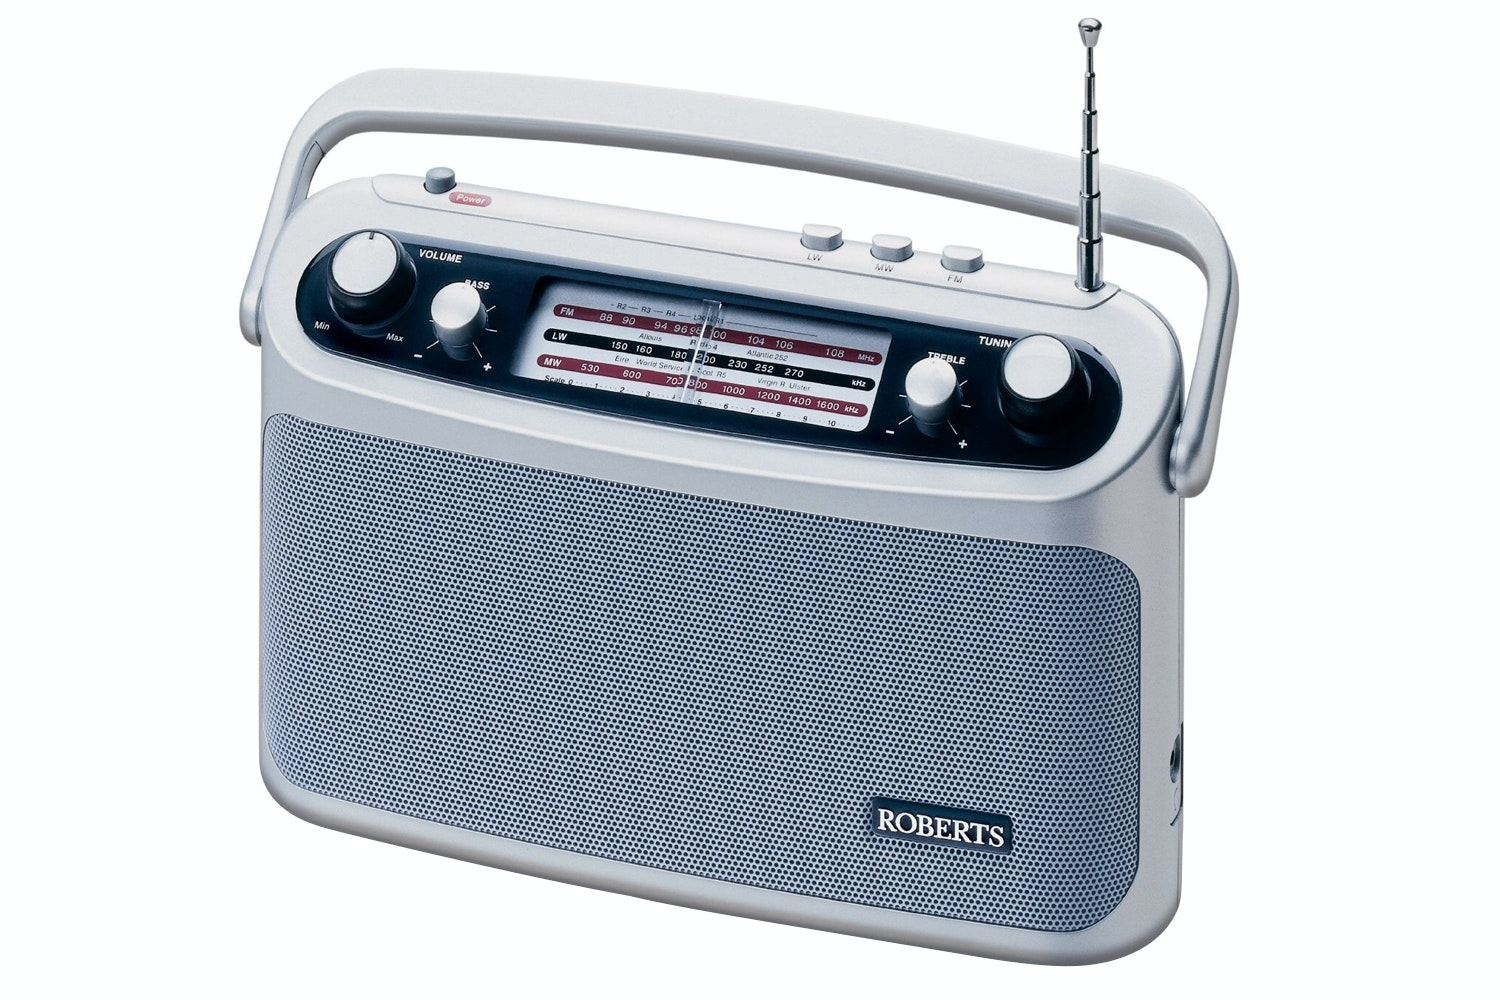 Roberts 3 Band Portable Radio | R9927/0